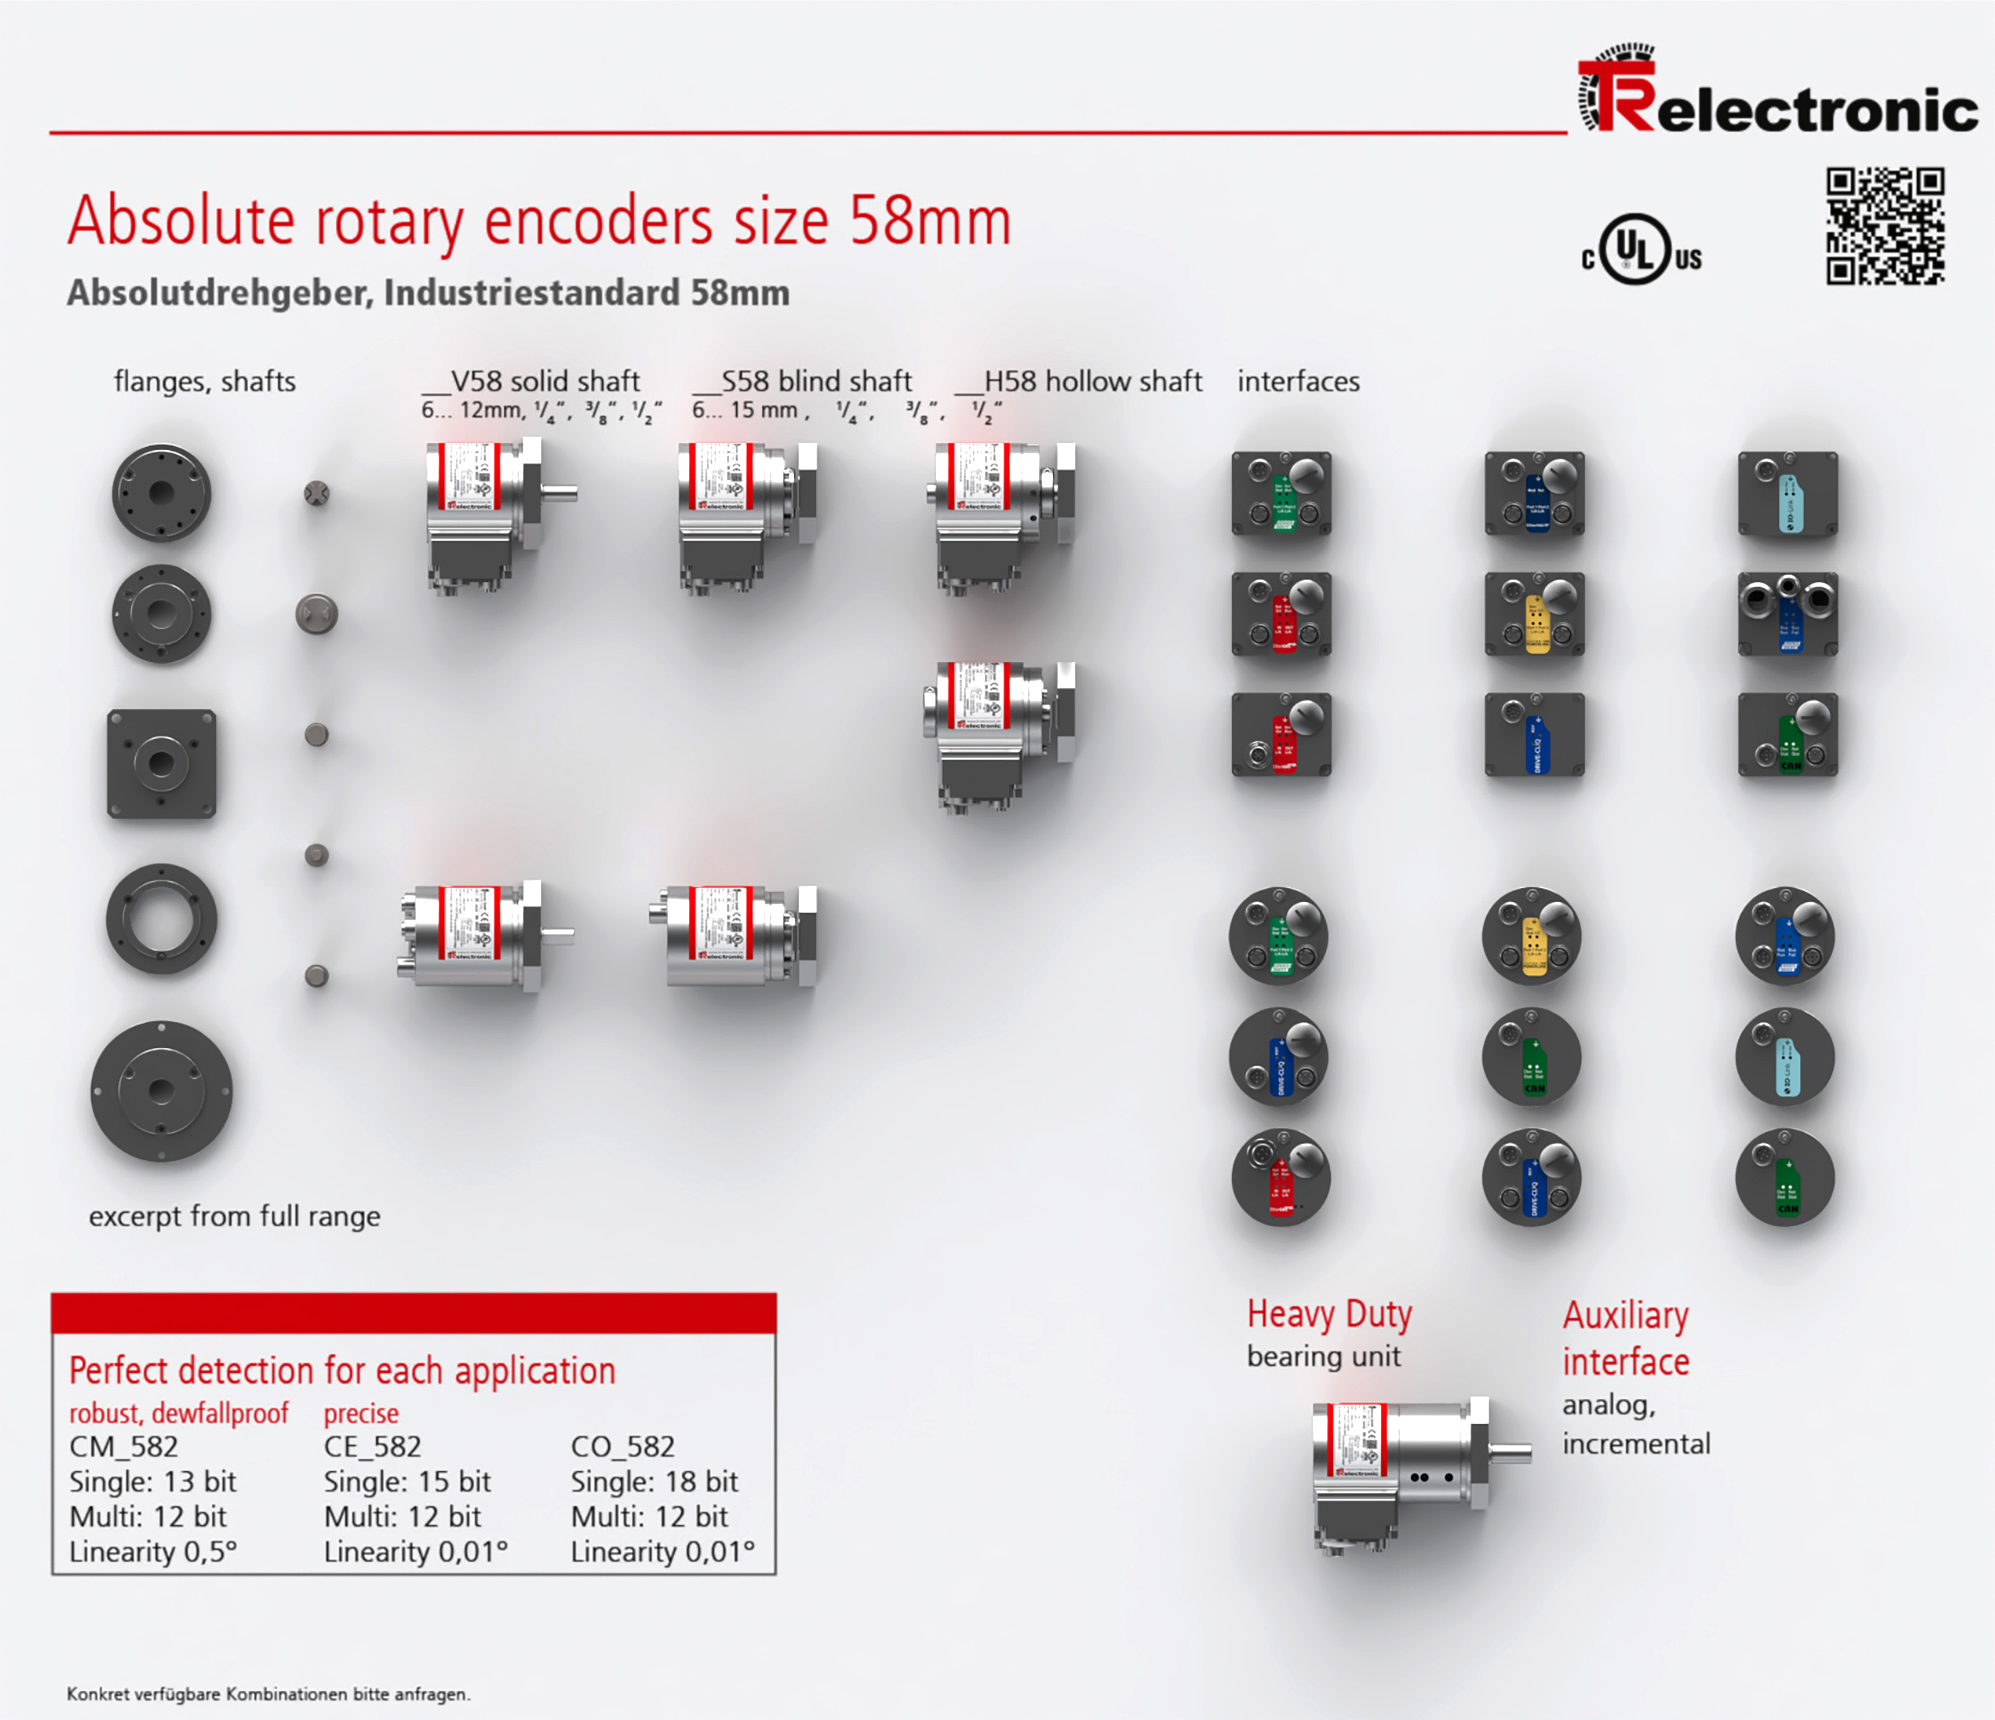 Absolute rotary encoders size 58mm